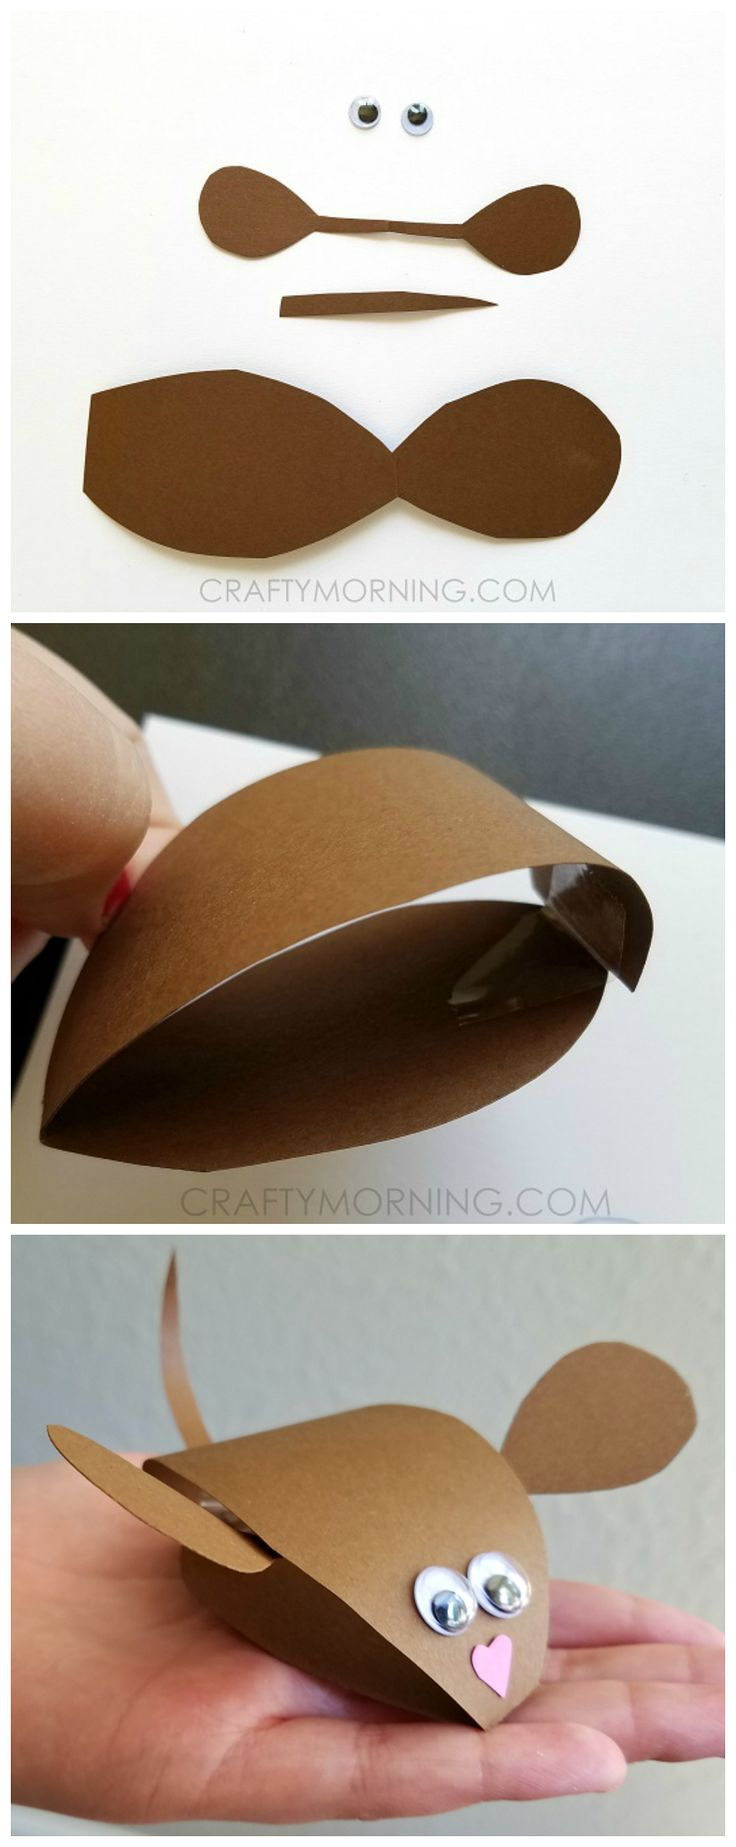 Ready rats diy mini scrapbook my crafts and diy projects - 3d Paper Mouse Craft For Kids